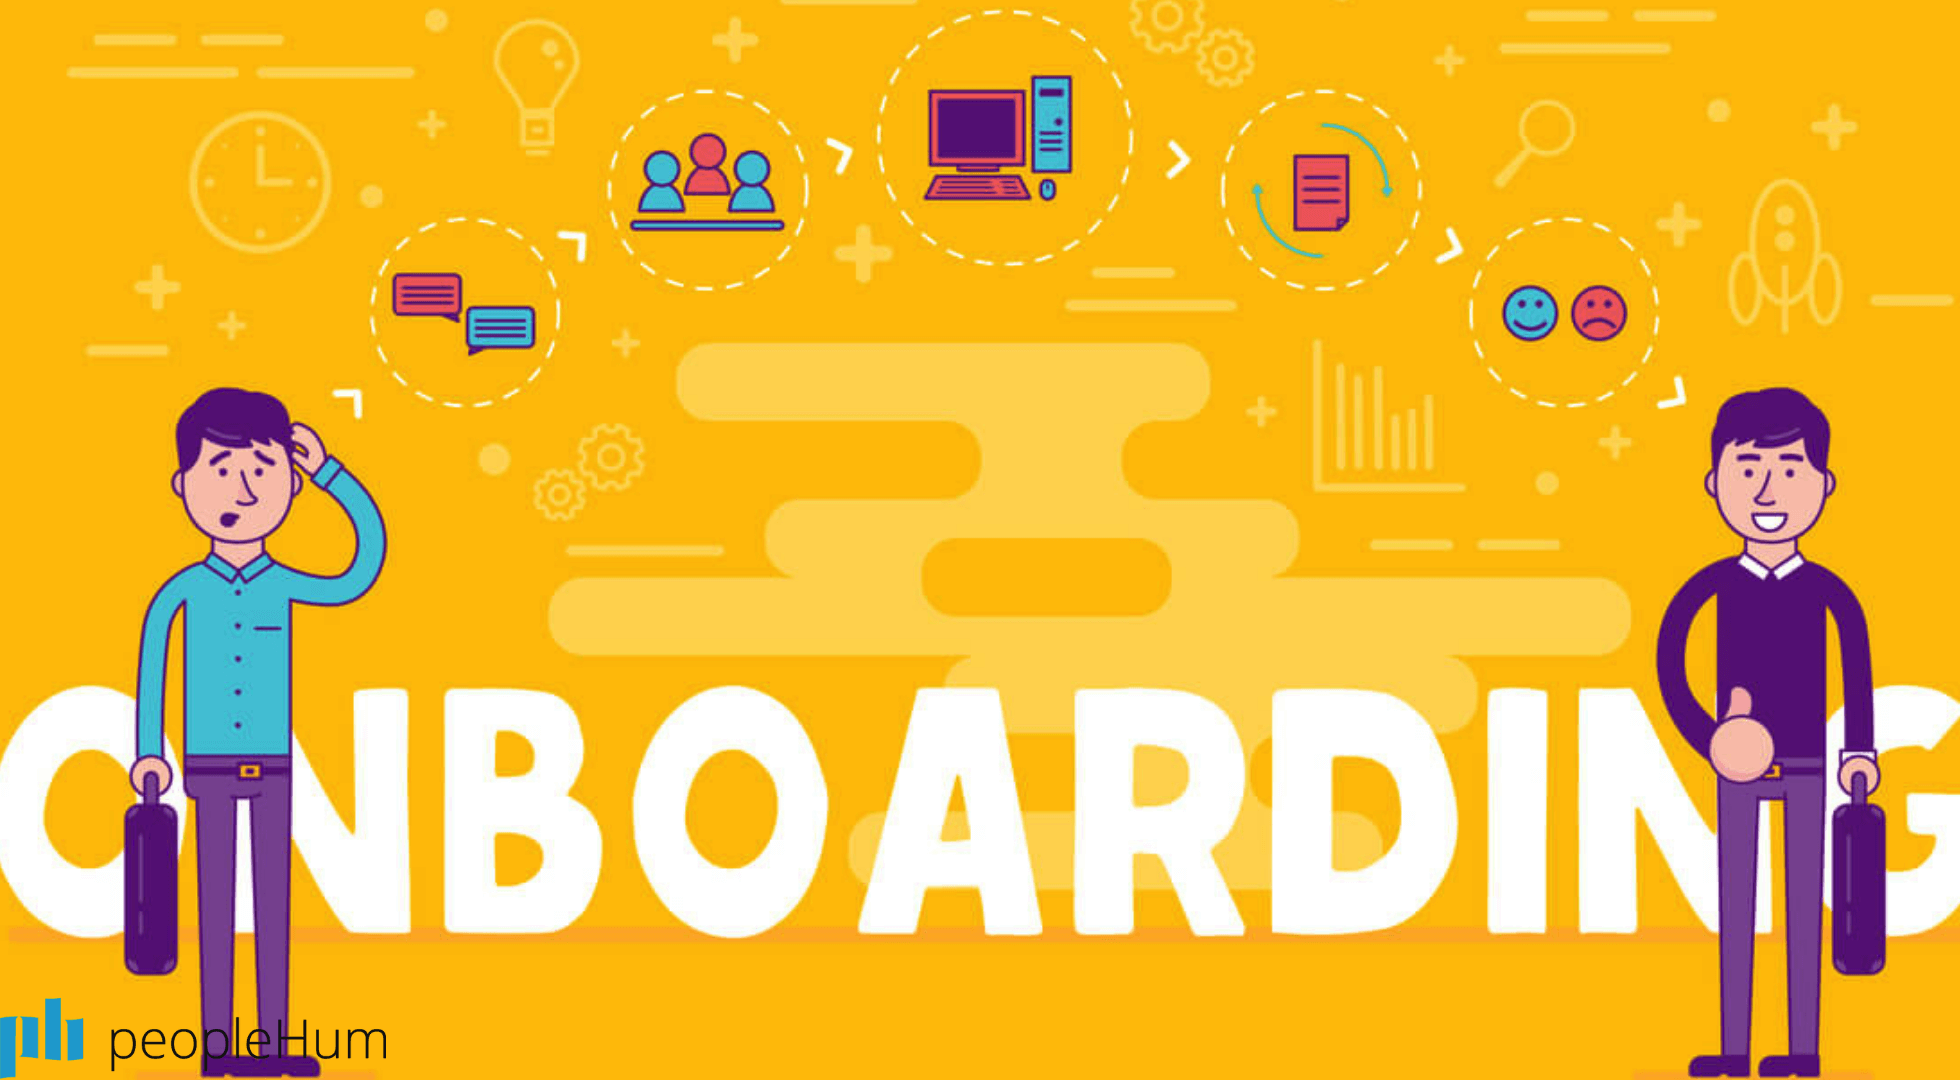 HR onboarding should be a pleasure, not a pain